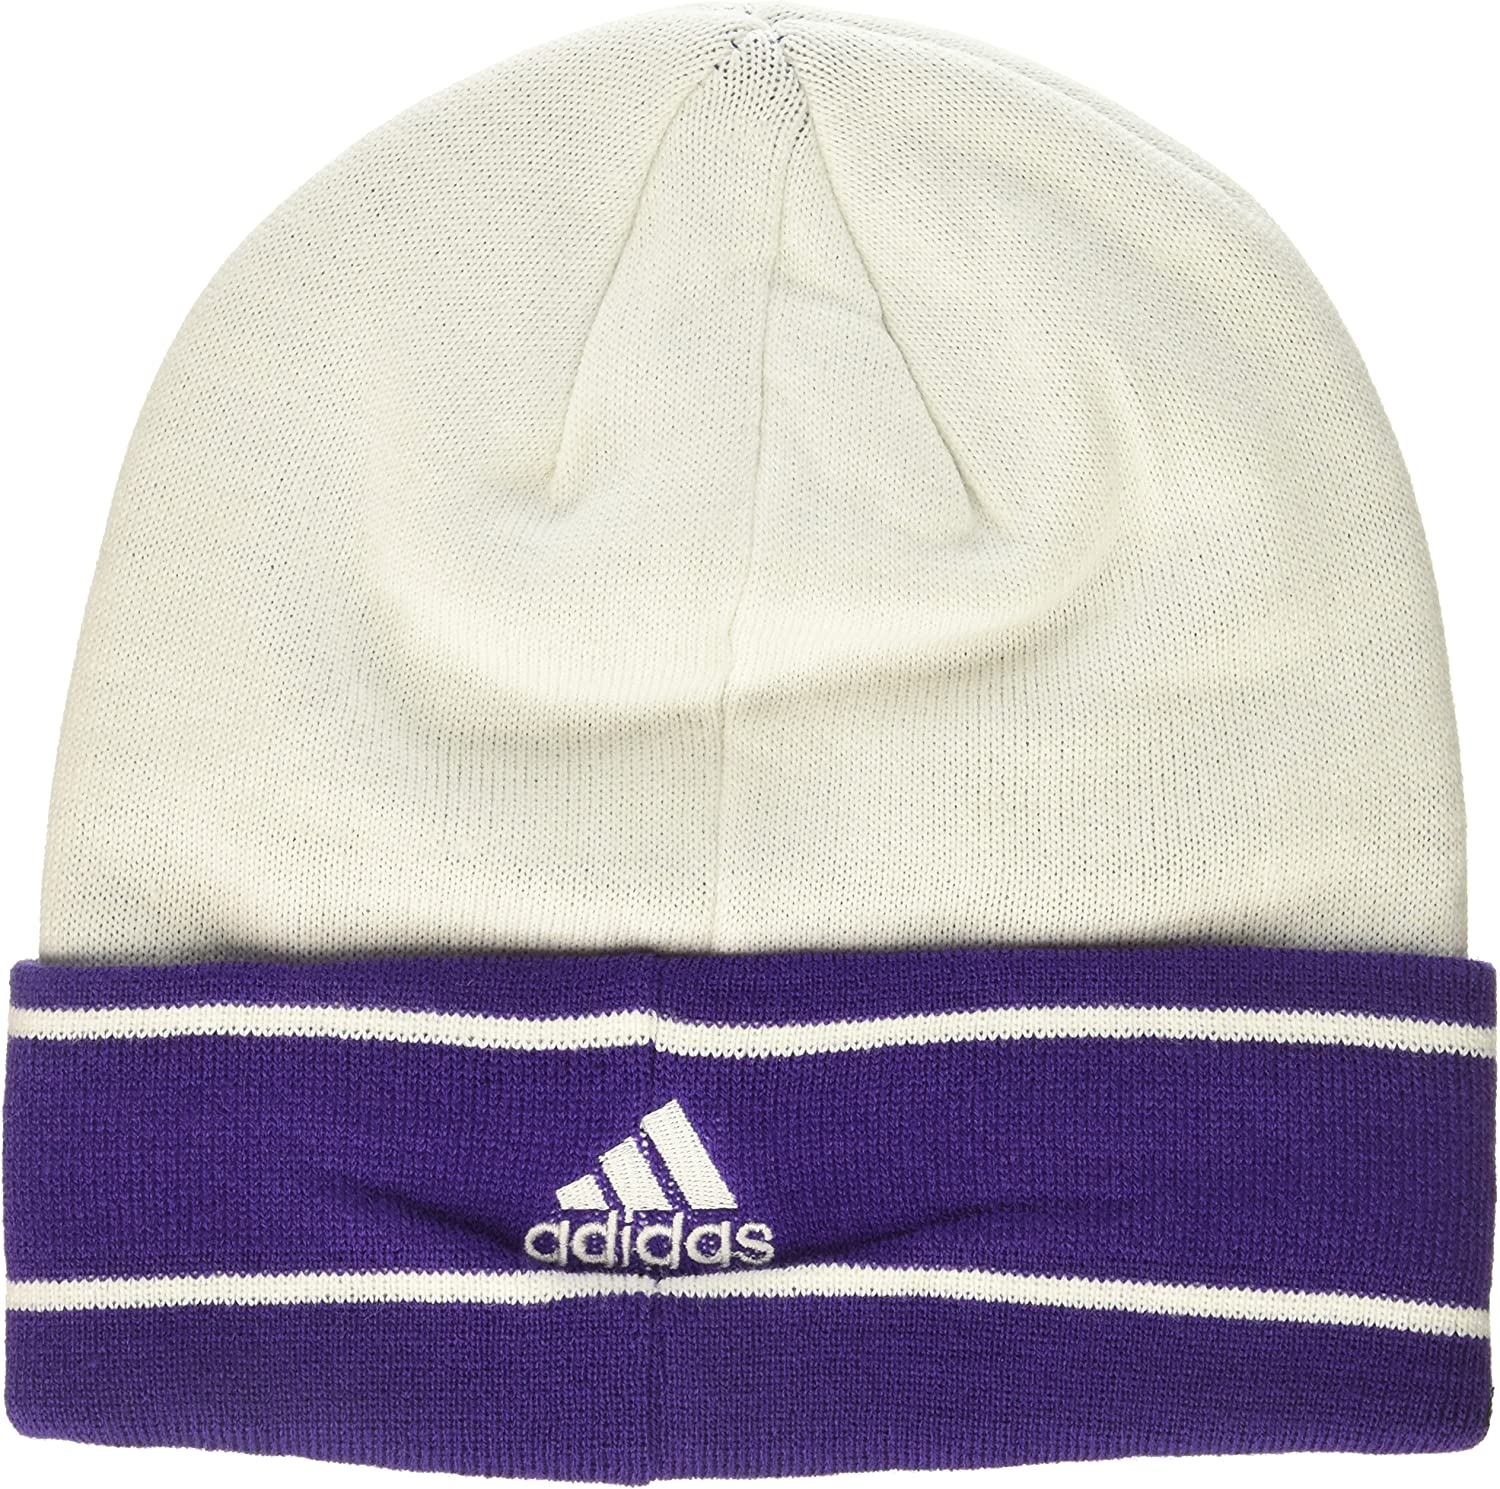 adidas MLS Adult Men Jacquard Logo Cuffed Knit